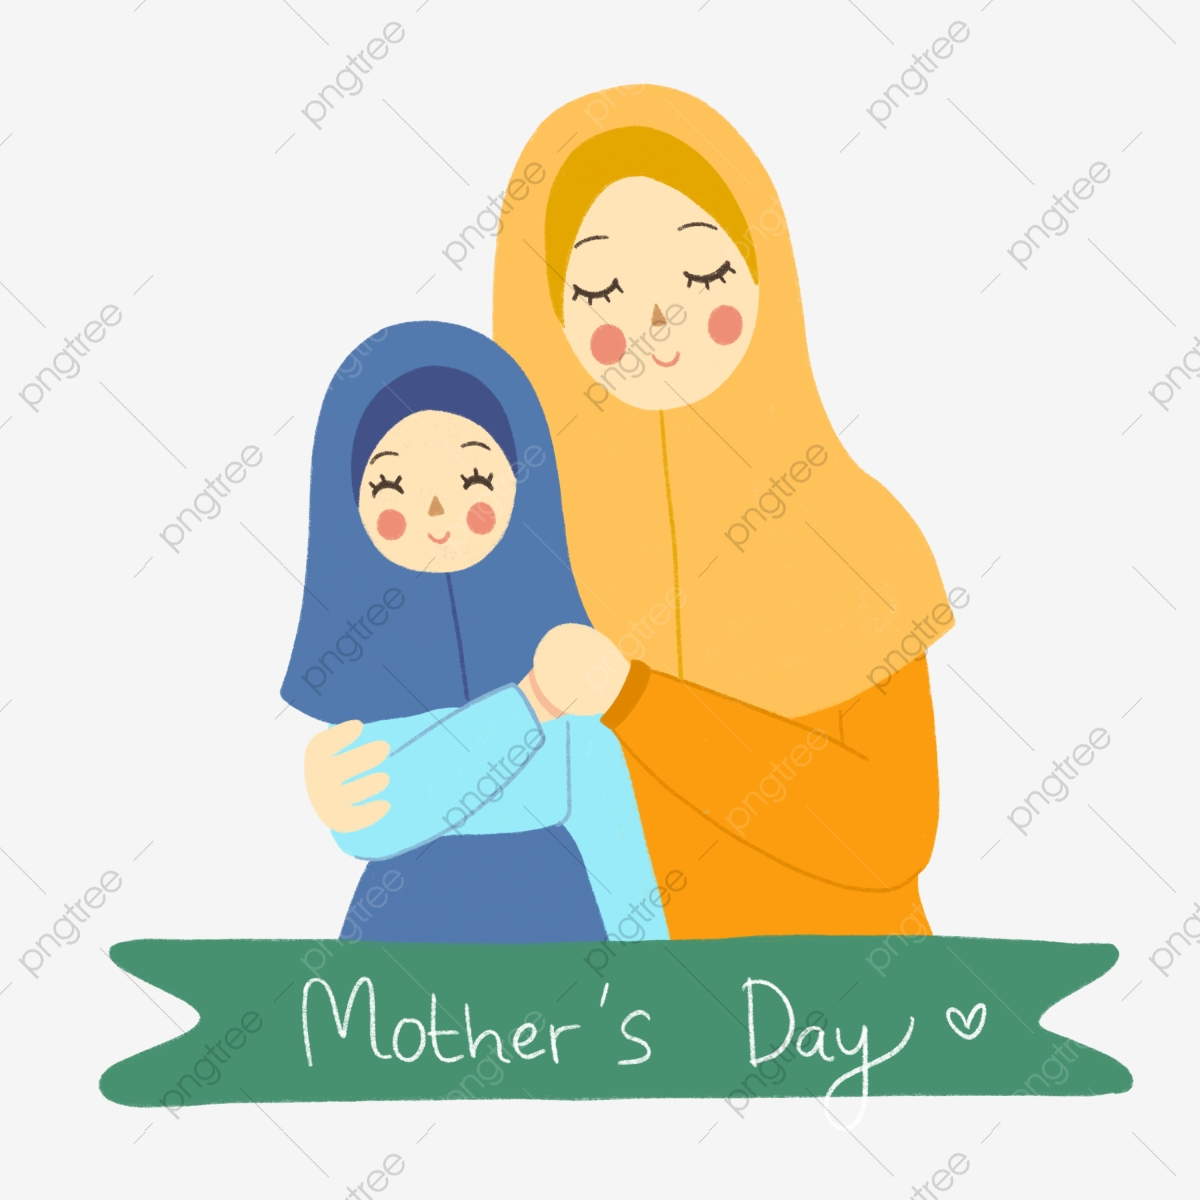 pngtree muslim family in hijab cute mothers day illustration in hand drawn png image 5435242